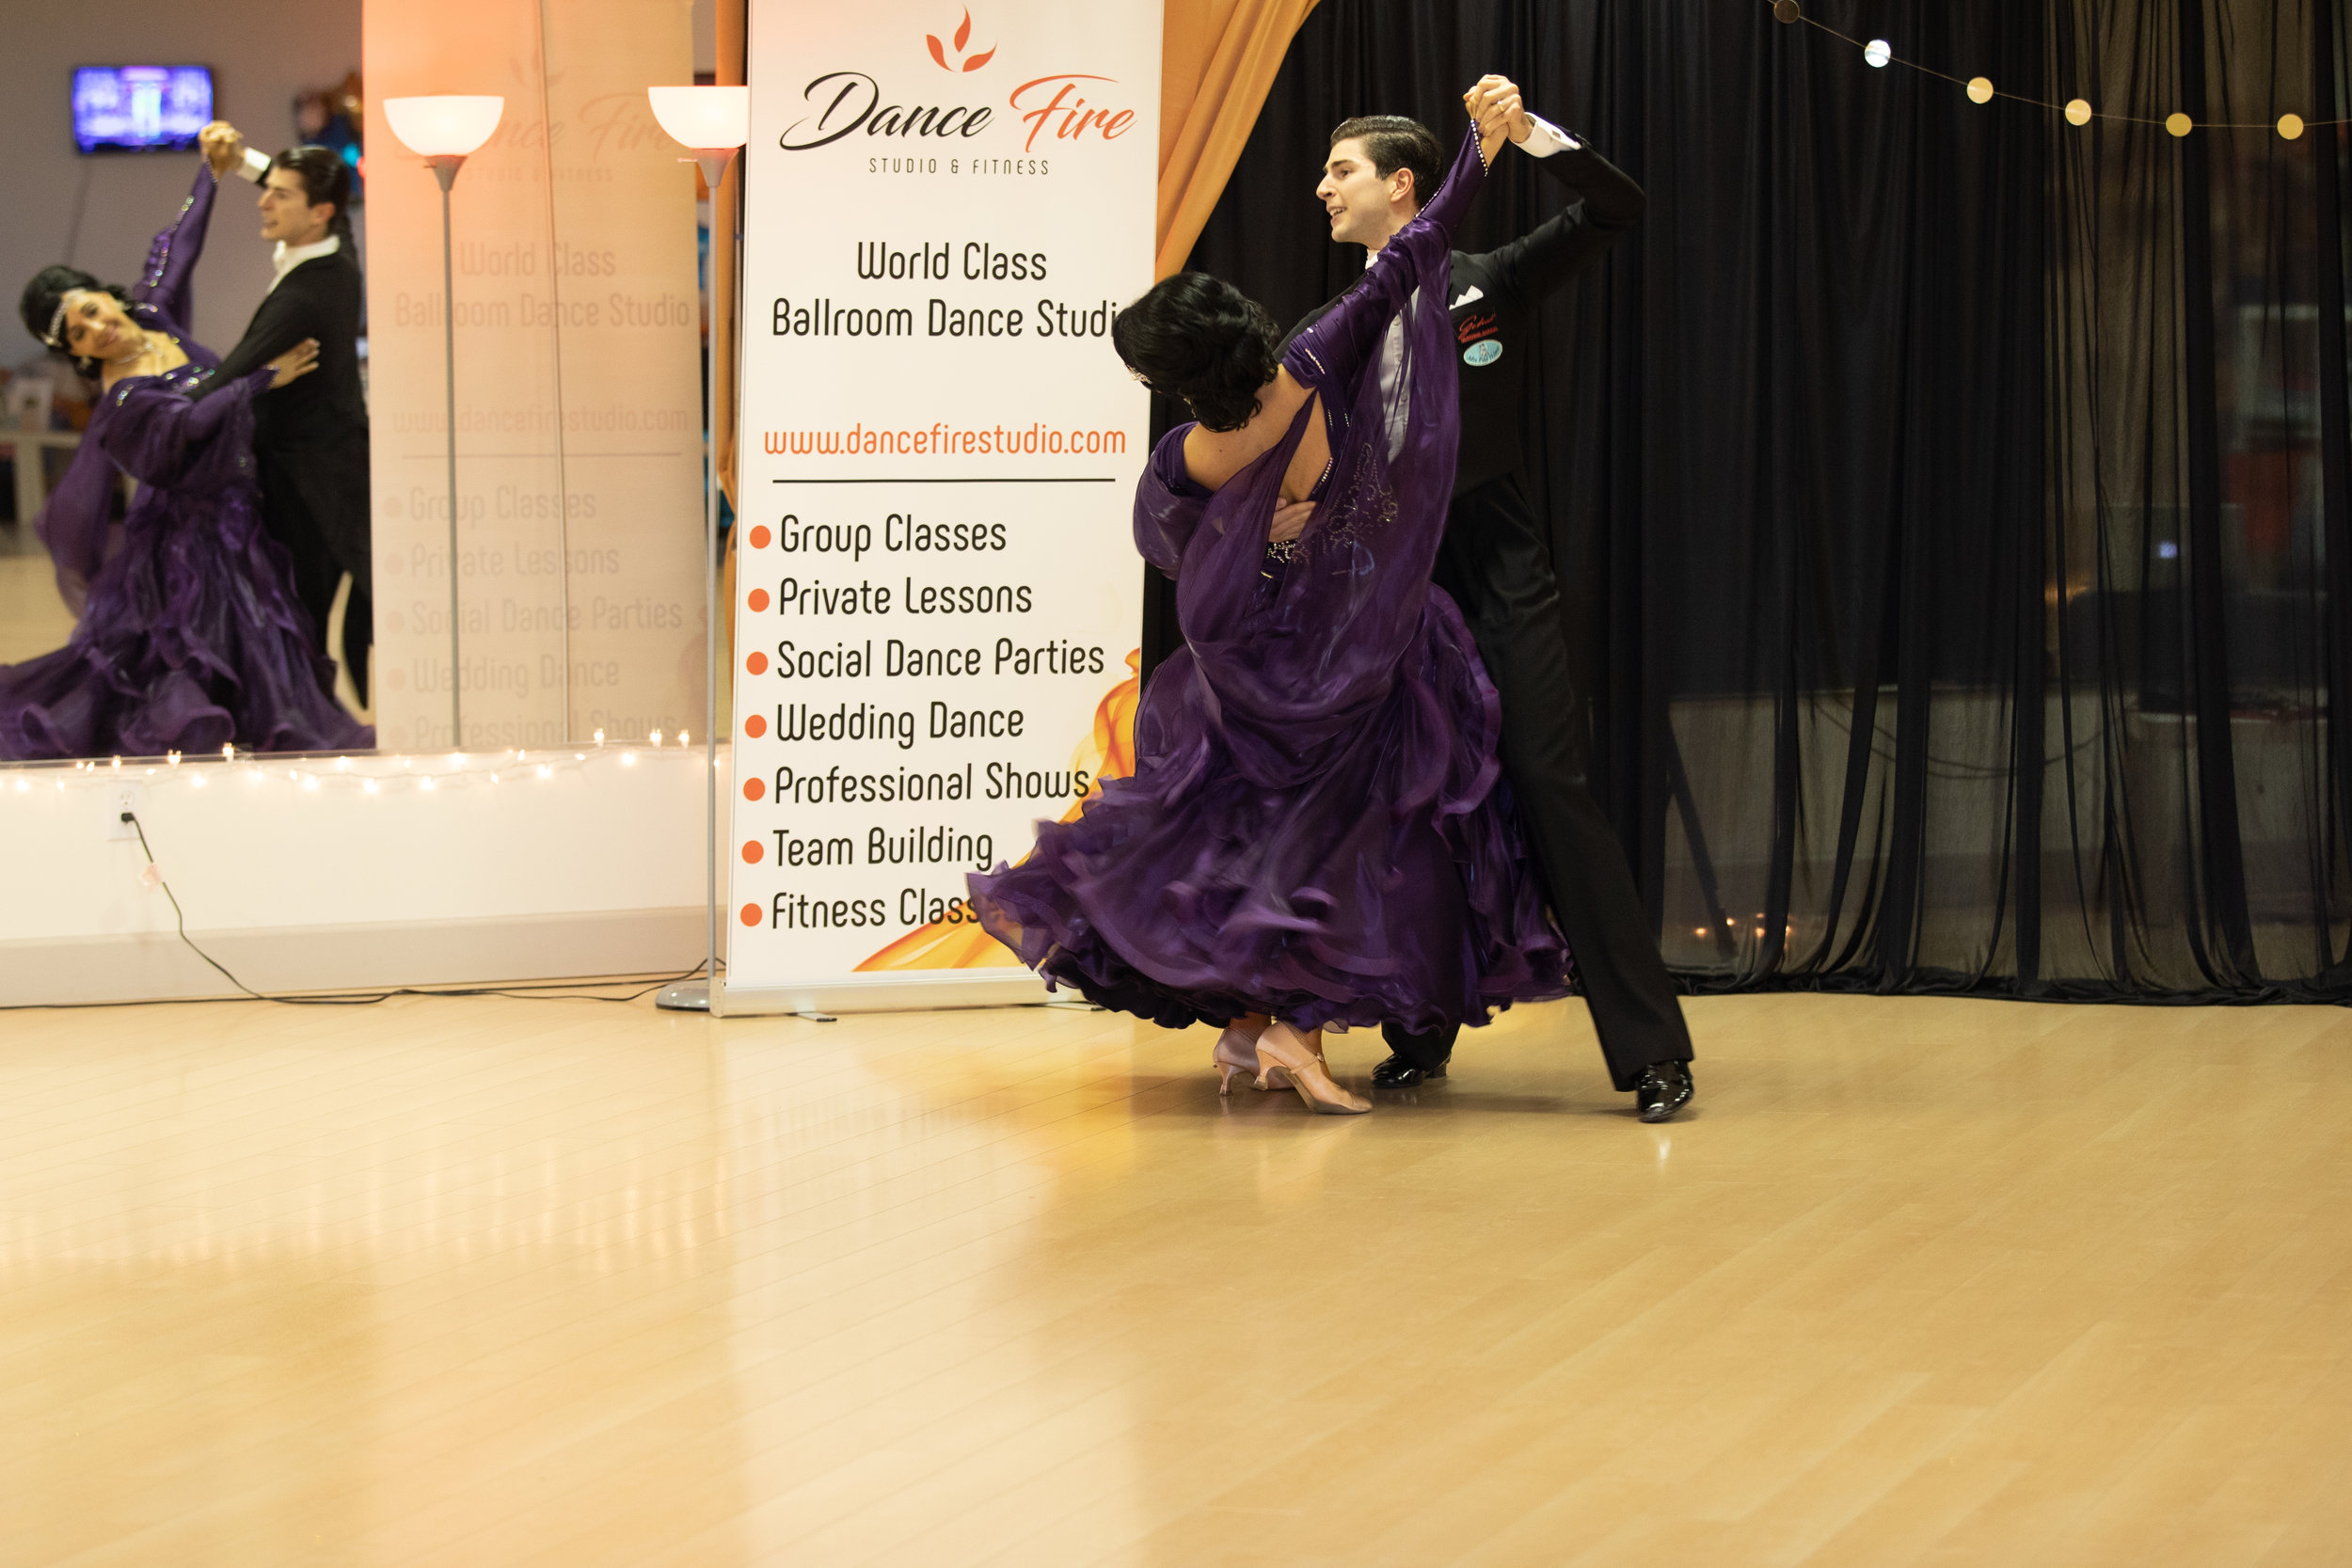 DanceFireShowcaseSpectacular2018-146.jpg